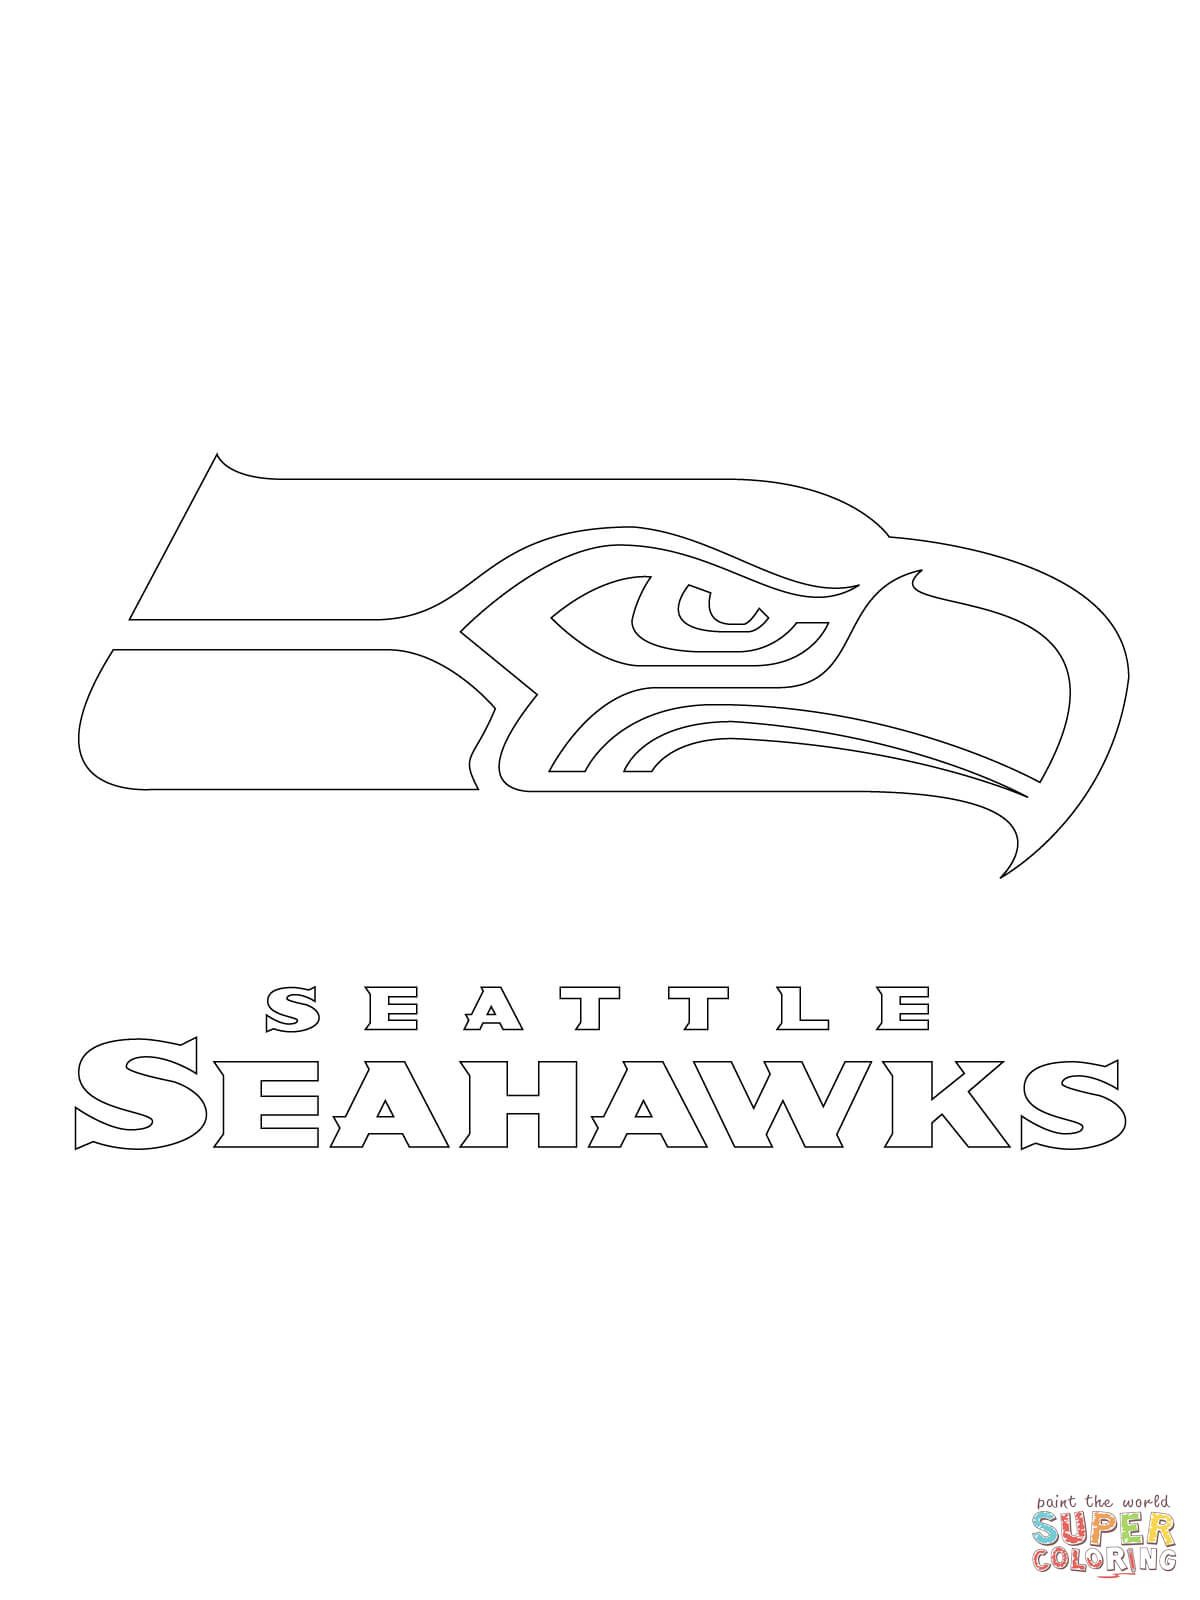 Seattle Seahawks Logo   Super Coloring   Books Worth Reading - Free Printable Seahawks Coloring Pages